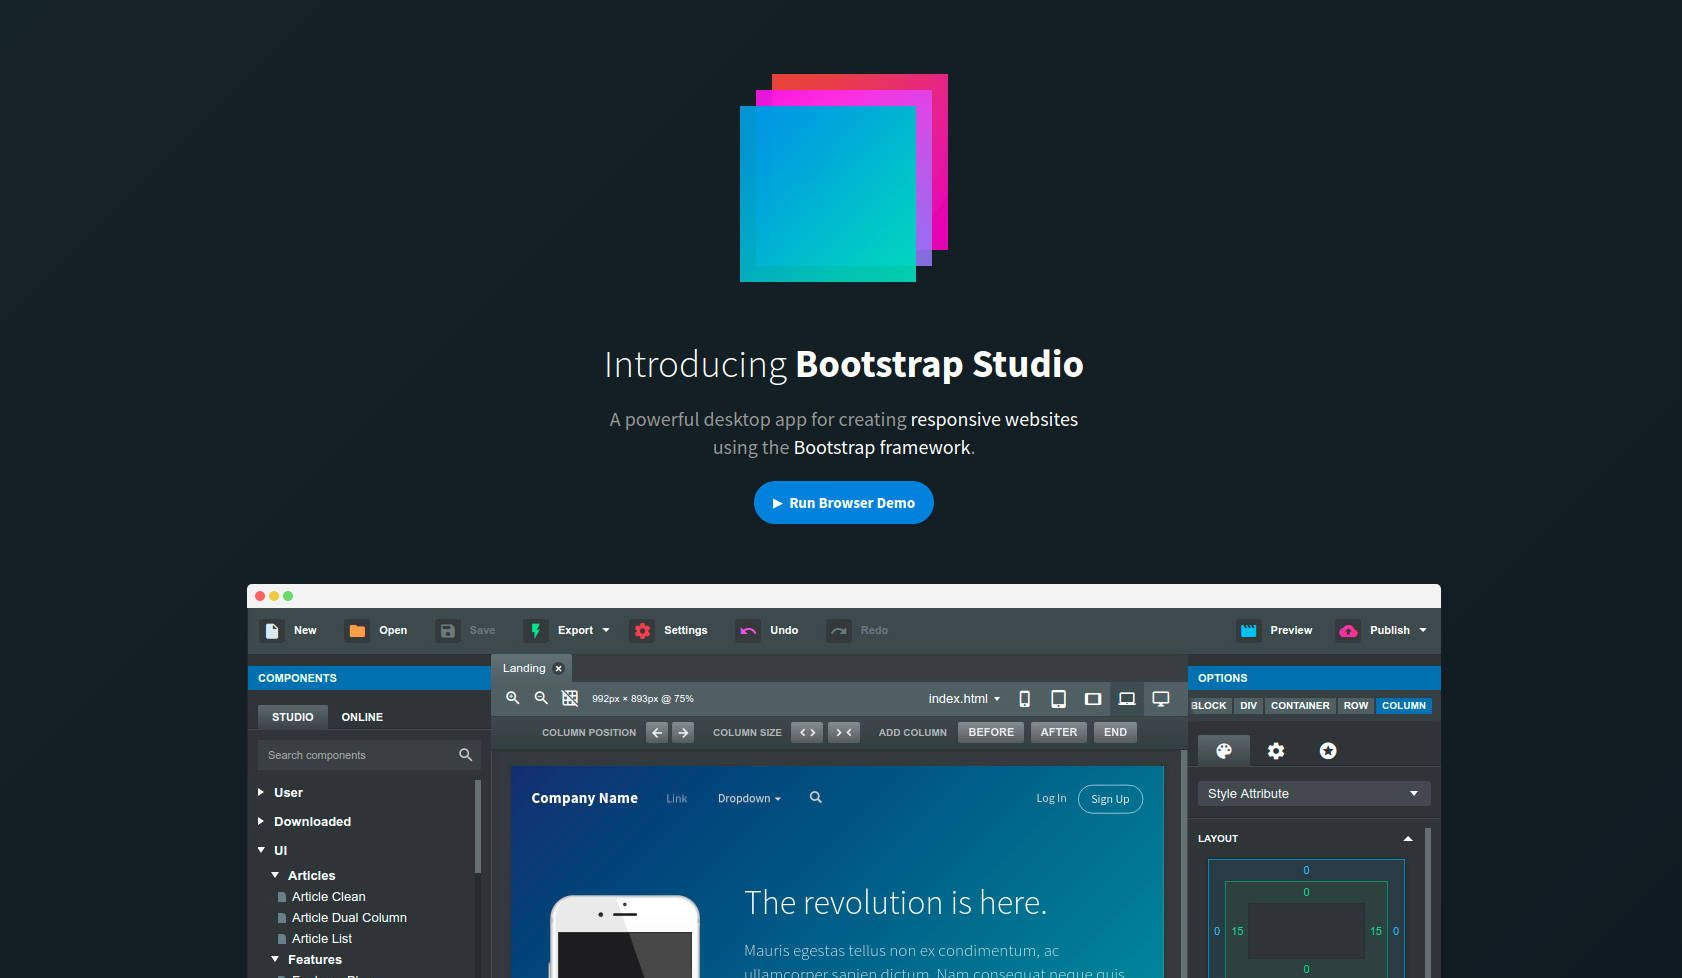 A Powerful Web Design Tool For Creating Responsive Websites Using The Bootstrap Framework Web Design Tools Tool Design Web Design